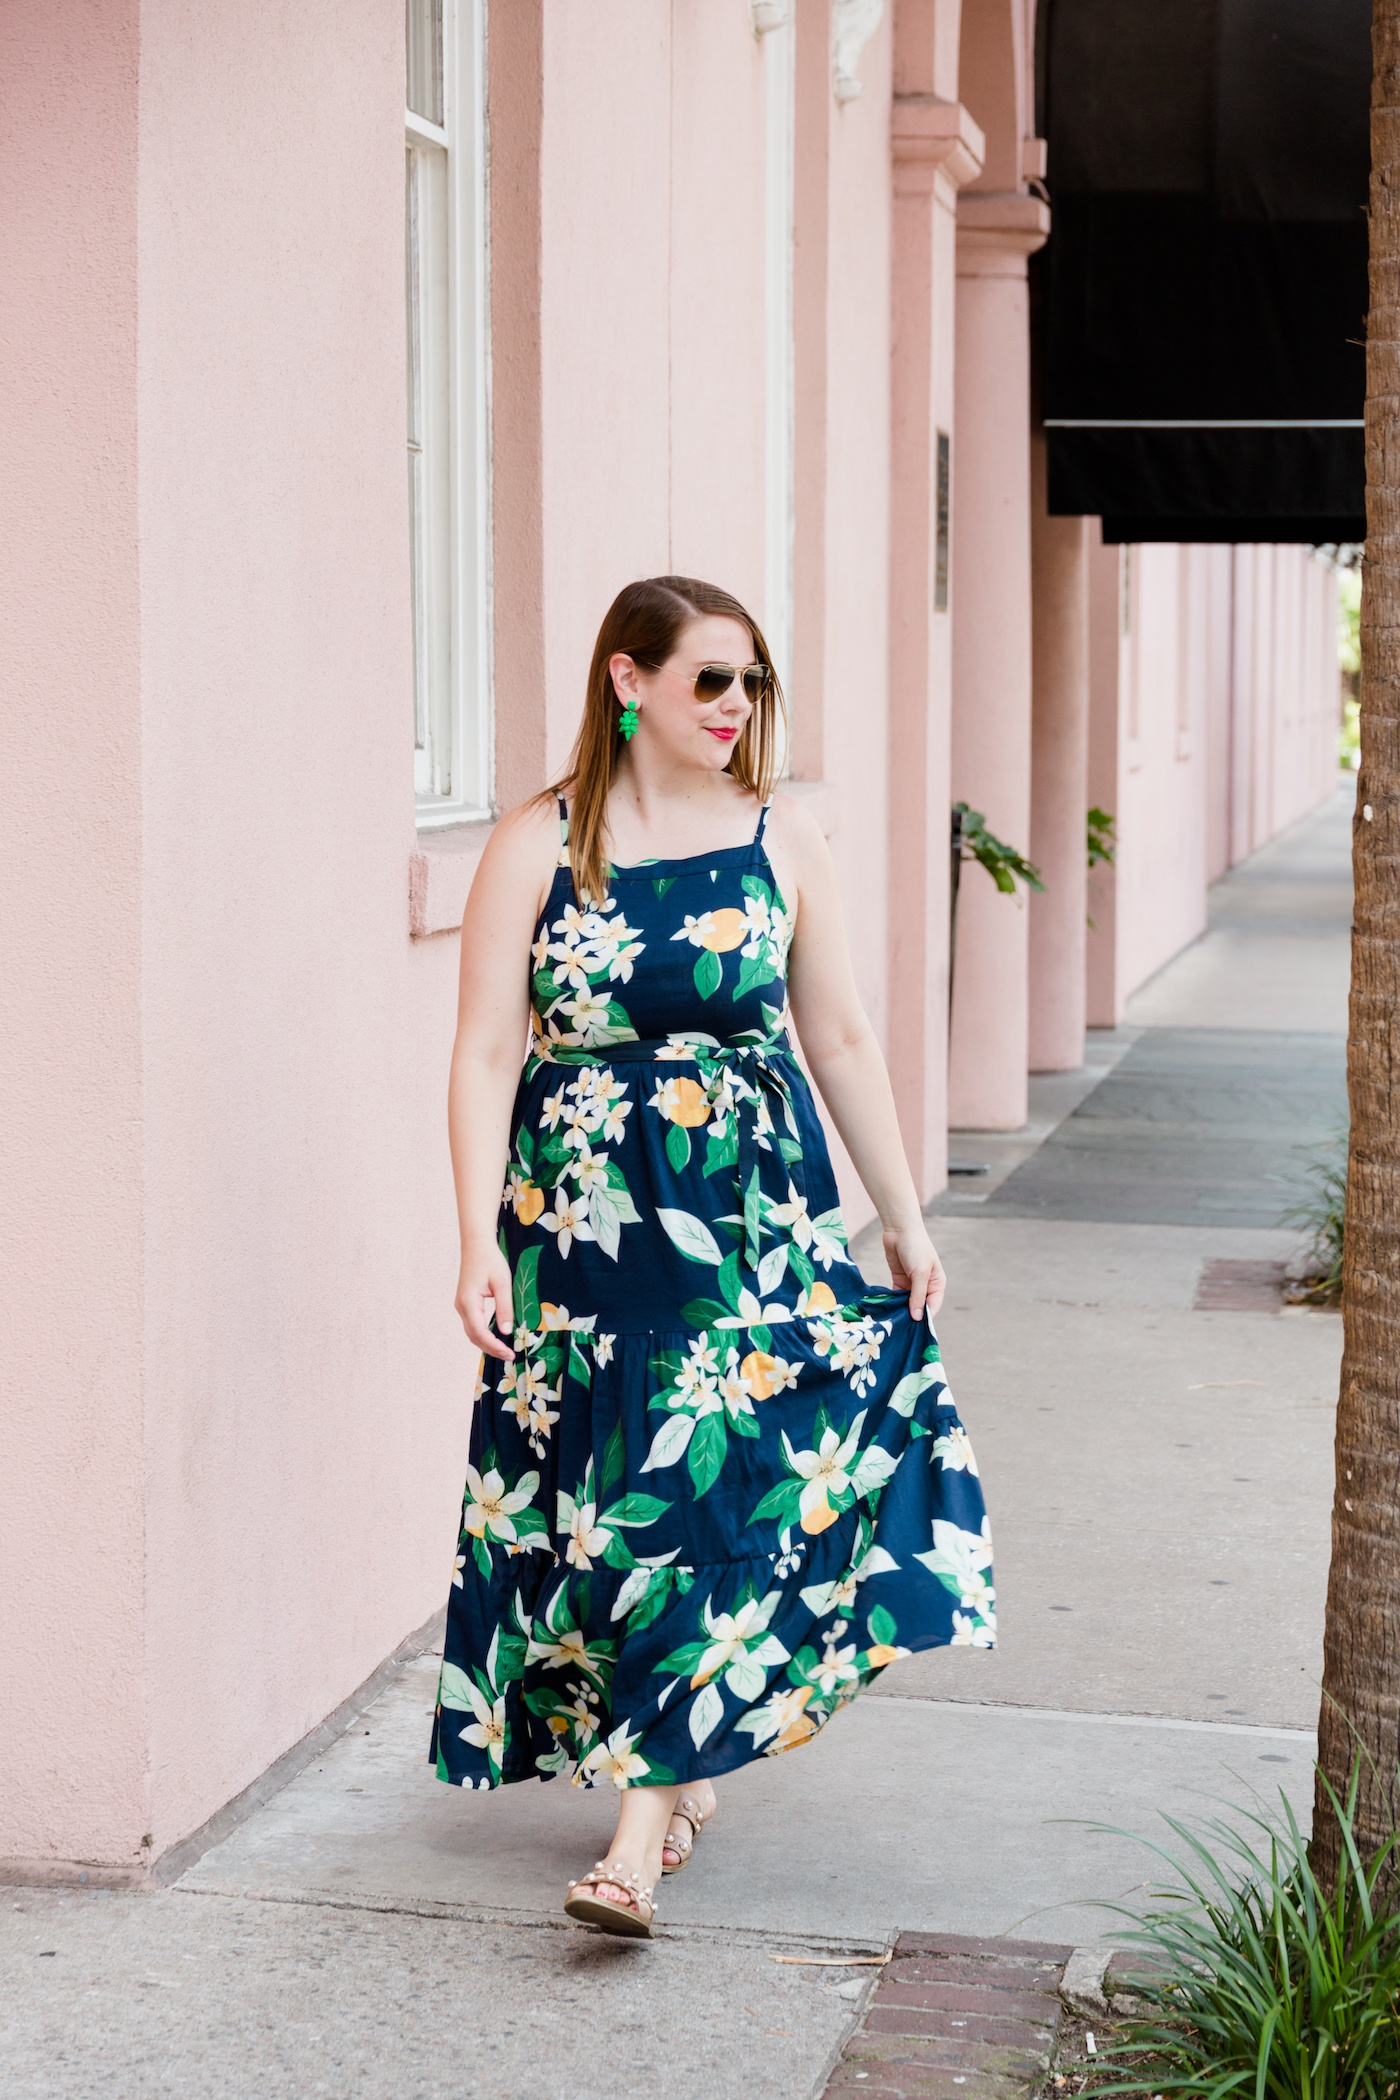 d3571a2518d4c Old Navy Maxi Dress for Summer | A Touch of Teal